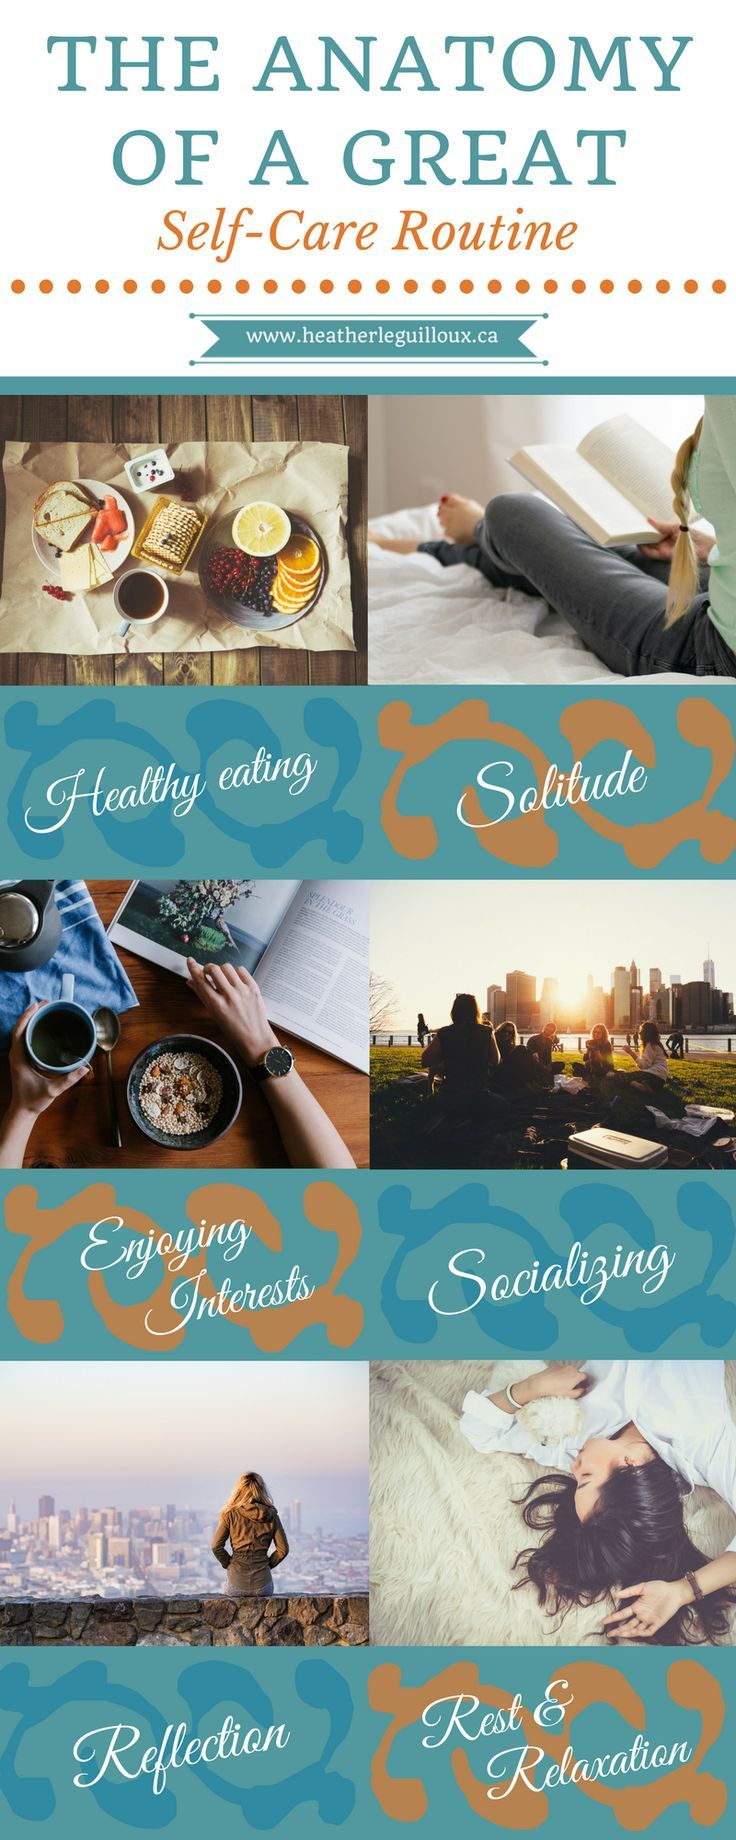 Blog article @hleguilloux focusing on six fundamental areas of a self-care routine including: healthy eating | solitude | interests | socializing | reflection | rest & relaxation - includes links & resources to help build your own great self-care routine!